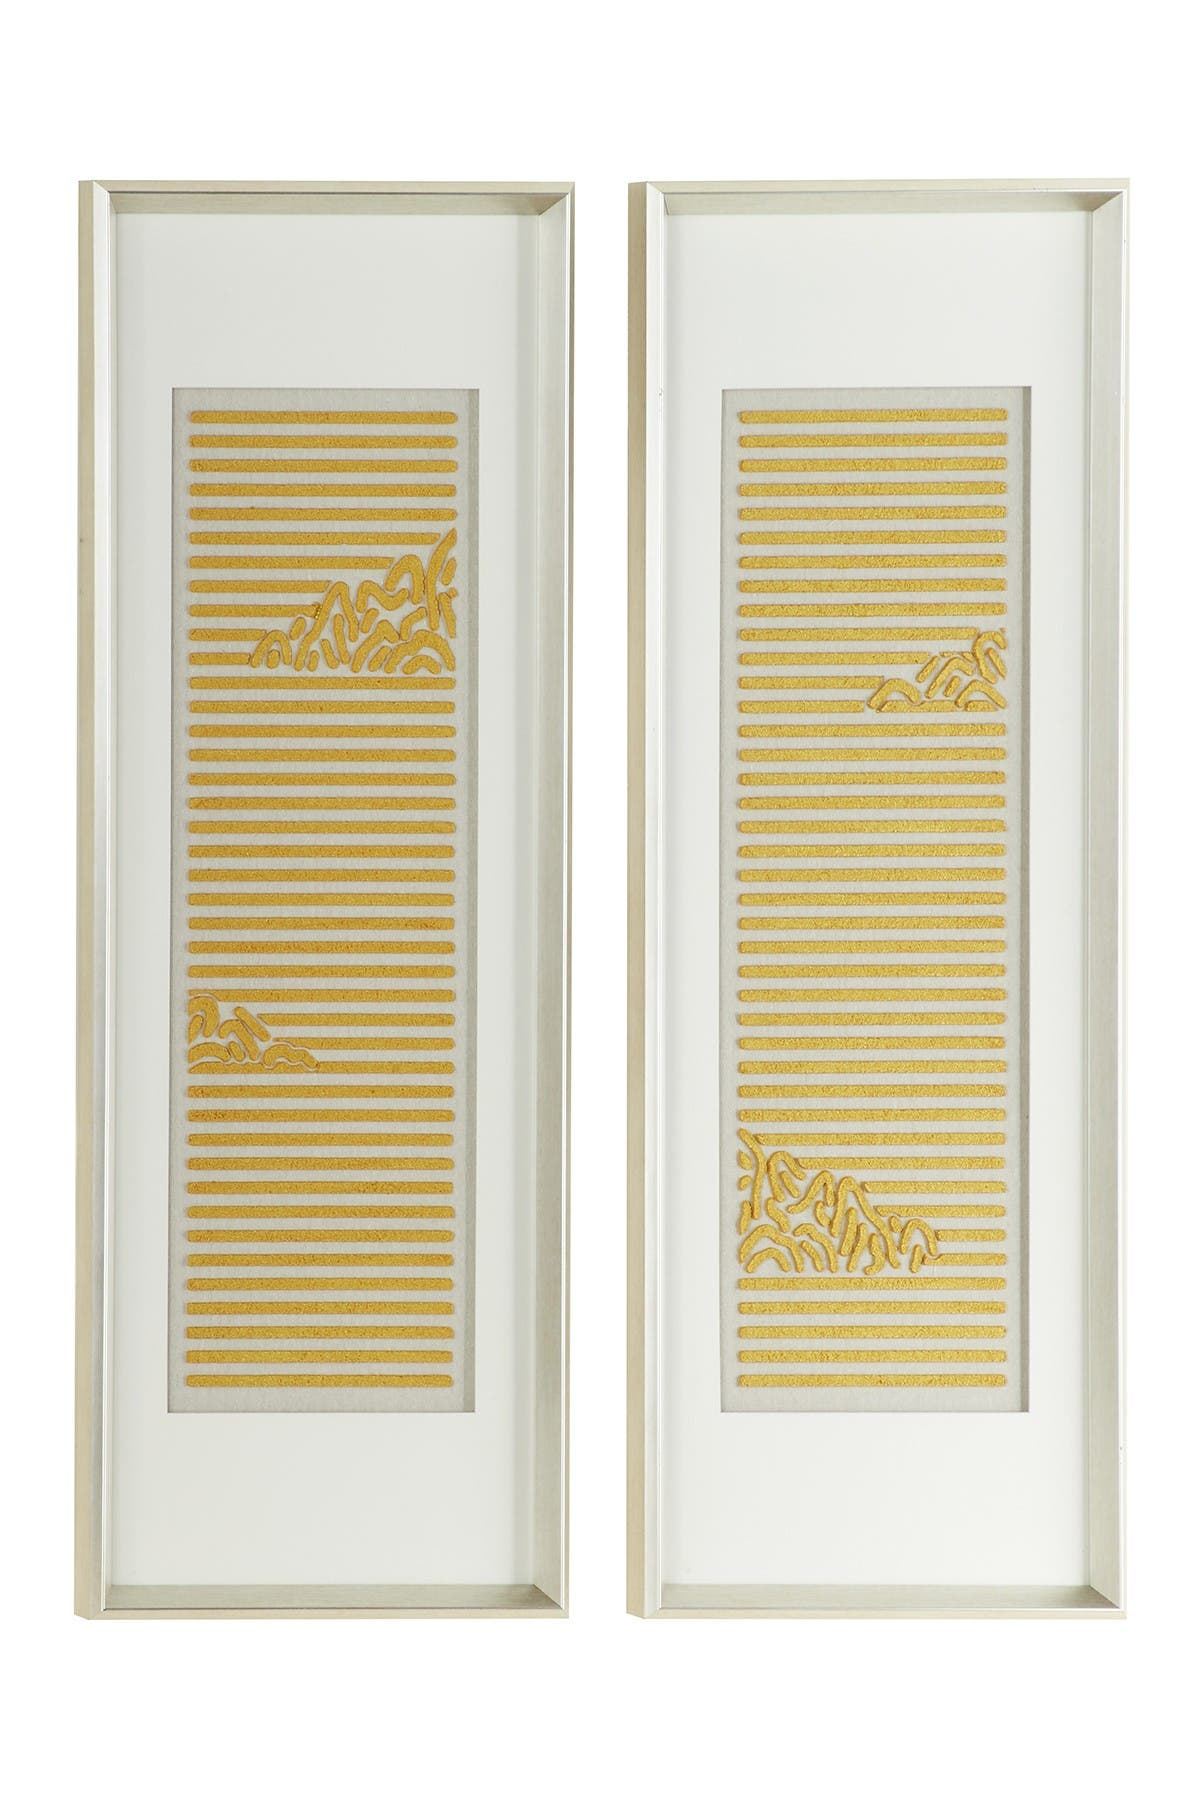 Willow Row Rectangular White Framed Abstract Yellow Cotton Patterned Acrylic Shadow Box - Set Of 2 at Nordstrom Rack